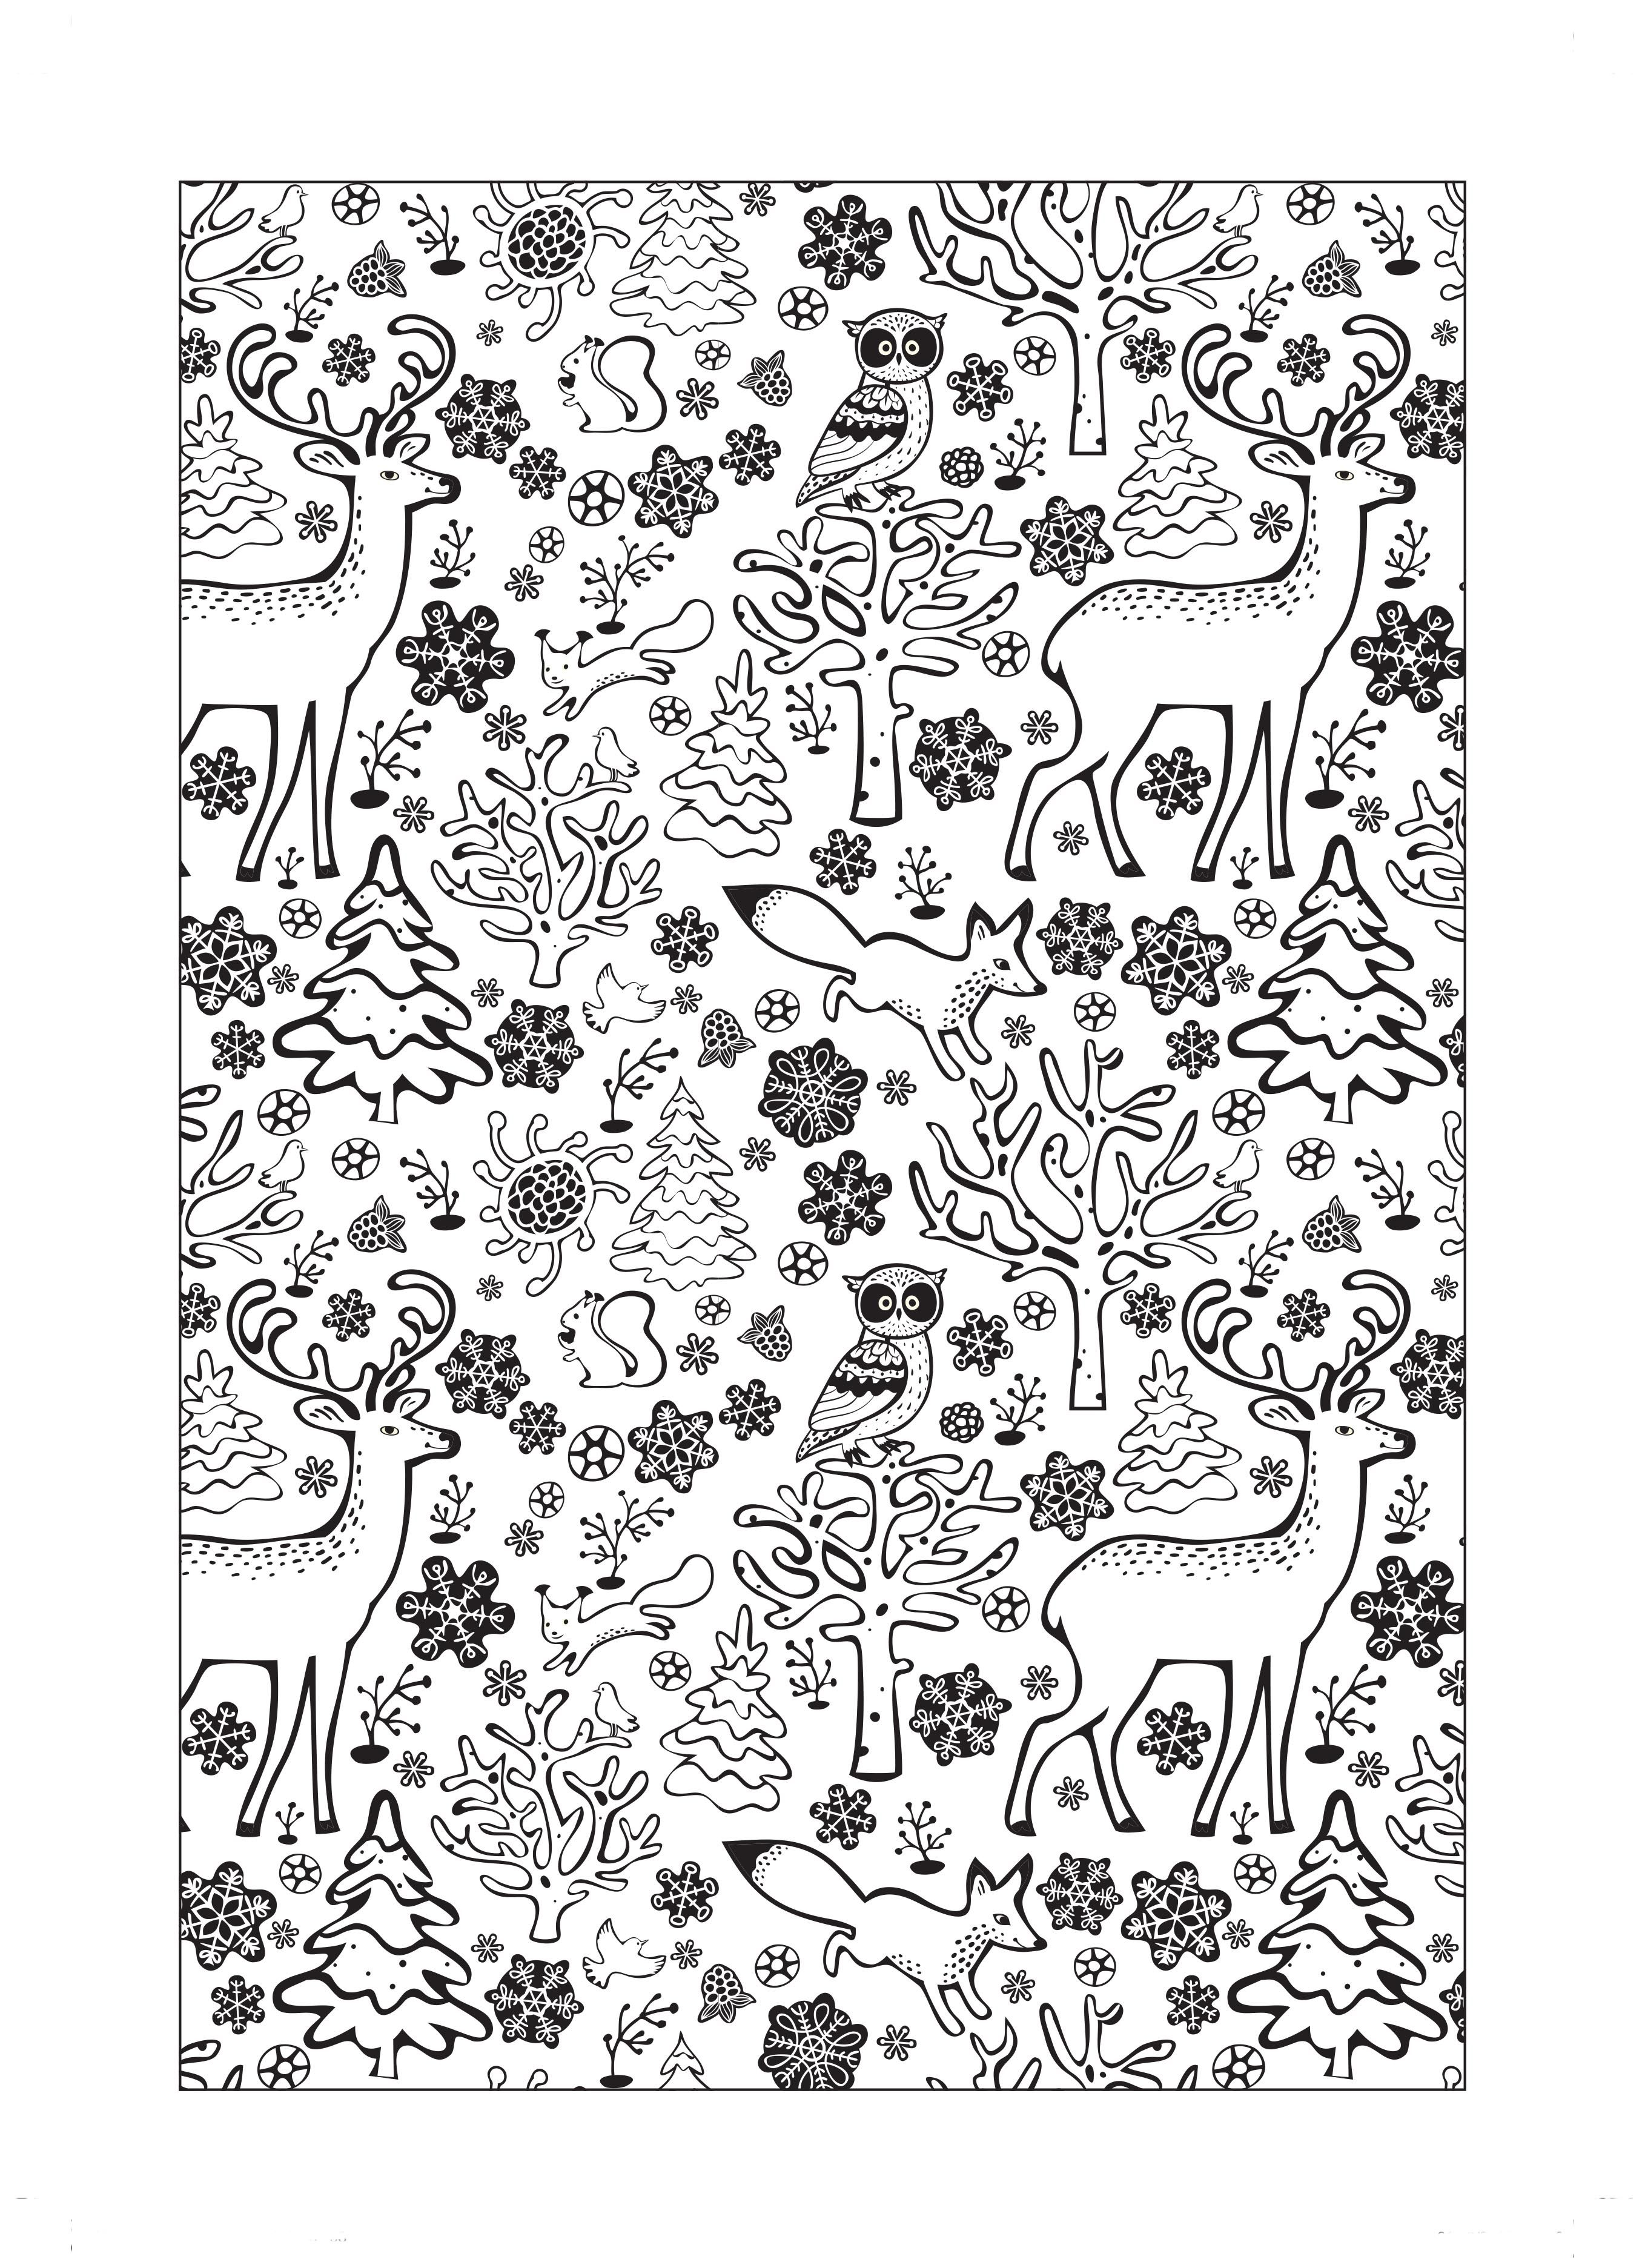 Christmas Coloring Ks2 With Free Colouring Sheets 2 Pinterest